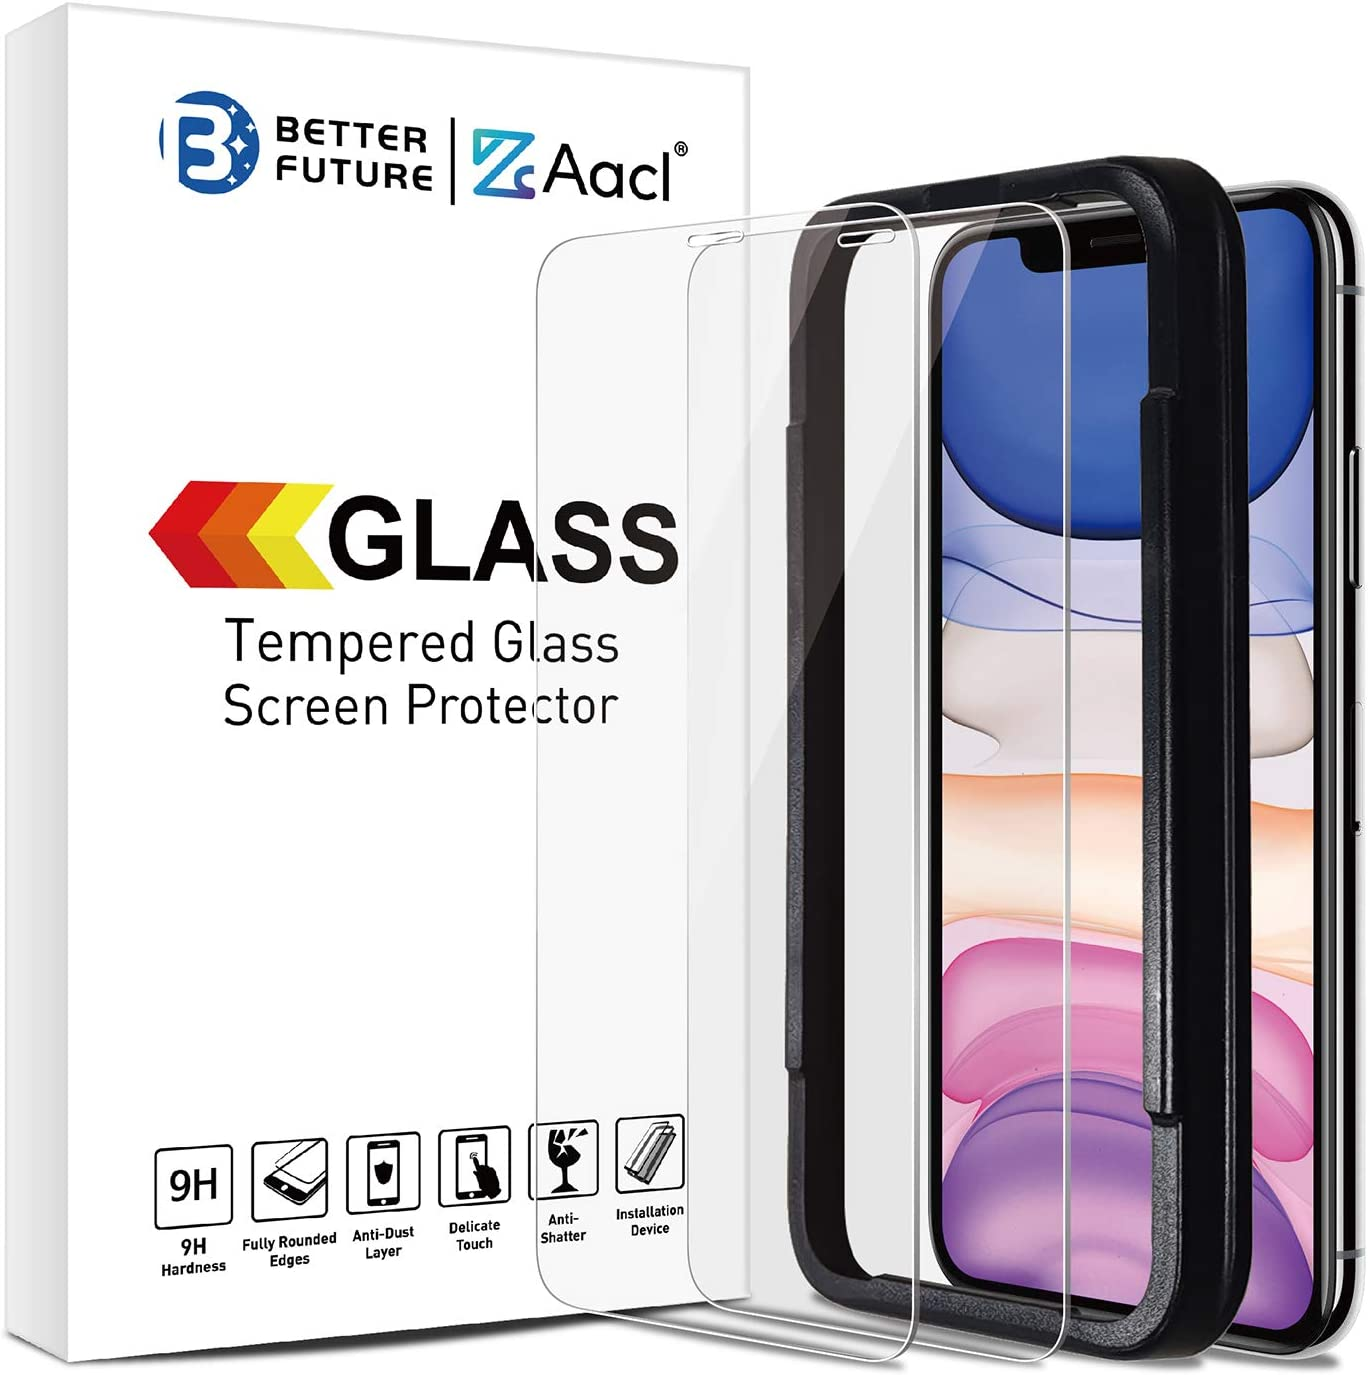 Glass Screen Protector for iPhone 11 Pro Max/XS Max,6.5 Inch,2 Pack,Tempered Glass Film,Not for Full Coverage